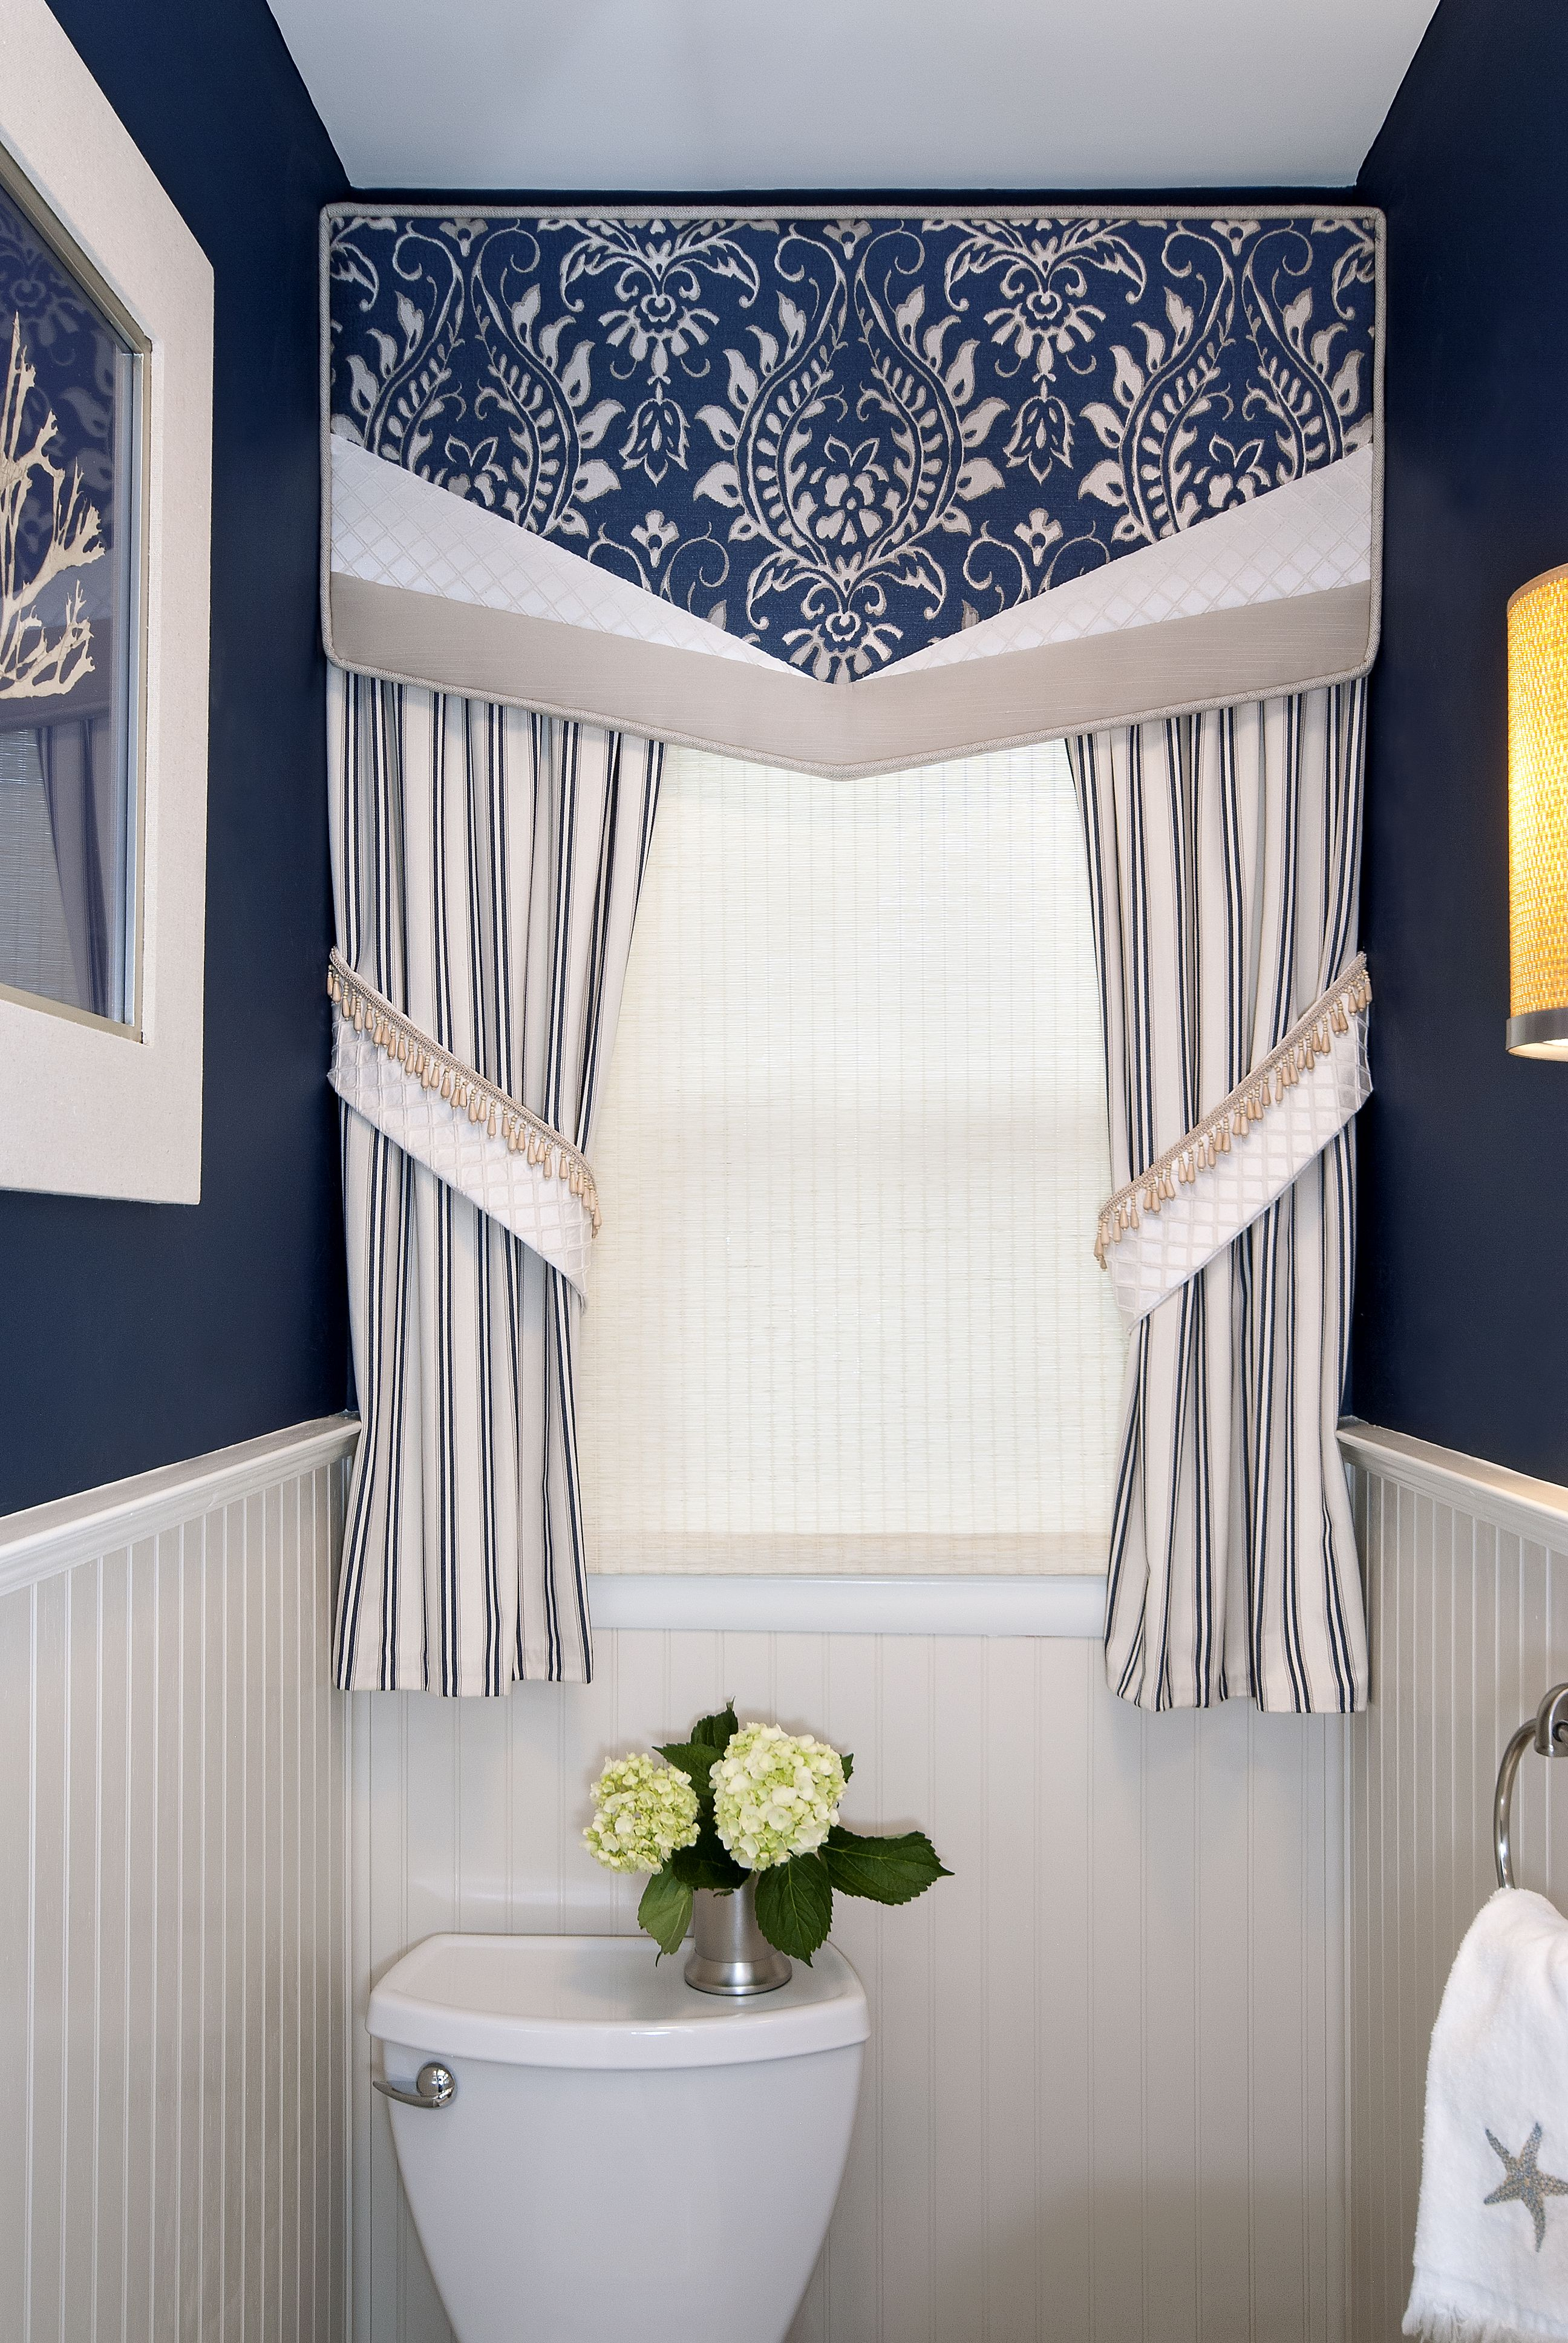 www.decoratingden.com | Window Treatments | Drapery designs ...